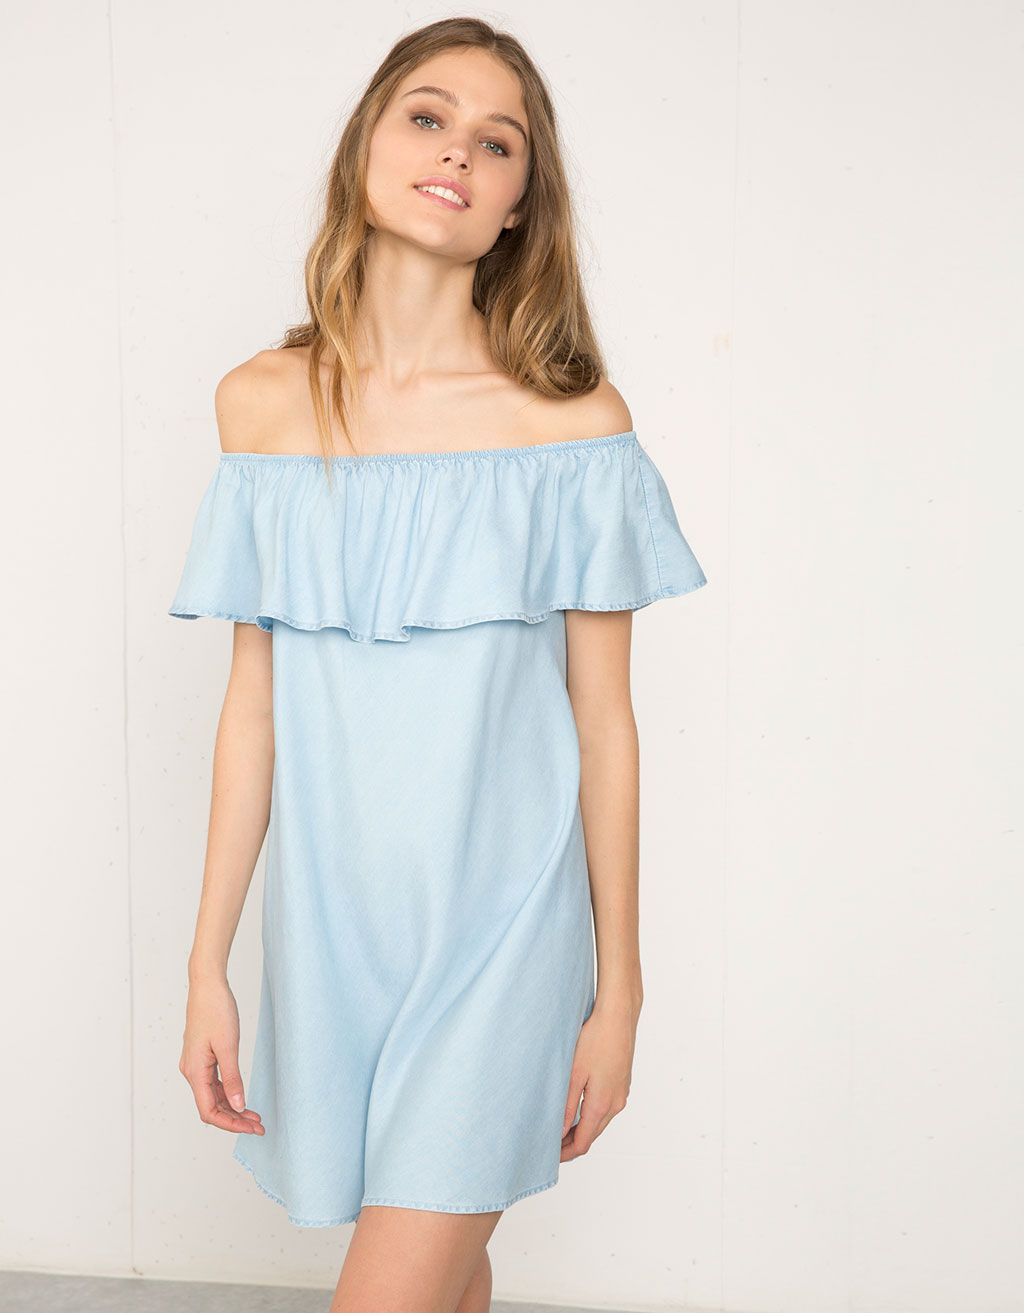 Bershka ruffle denim dress | My style | Pinterest | Vestidos ...